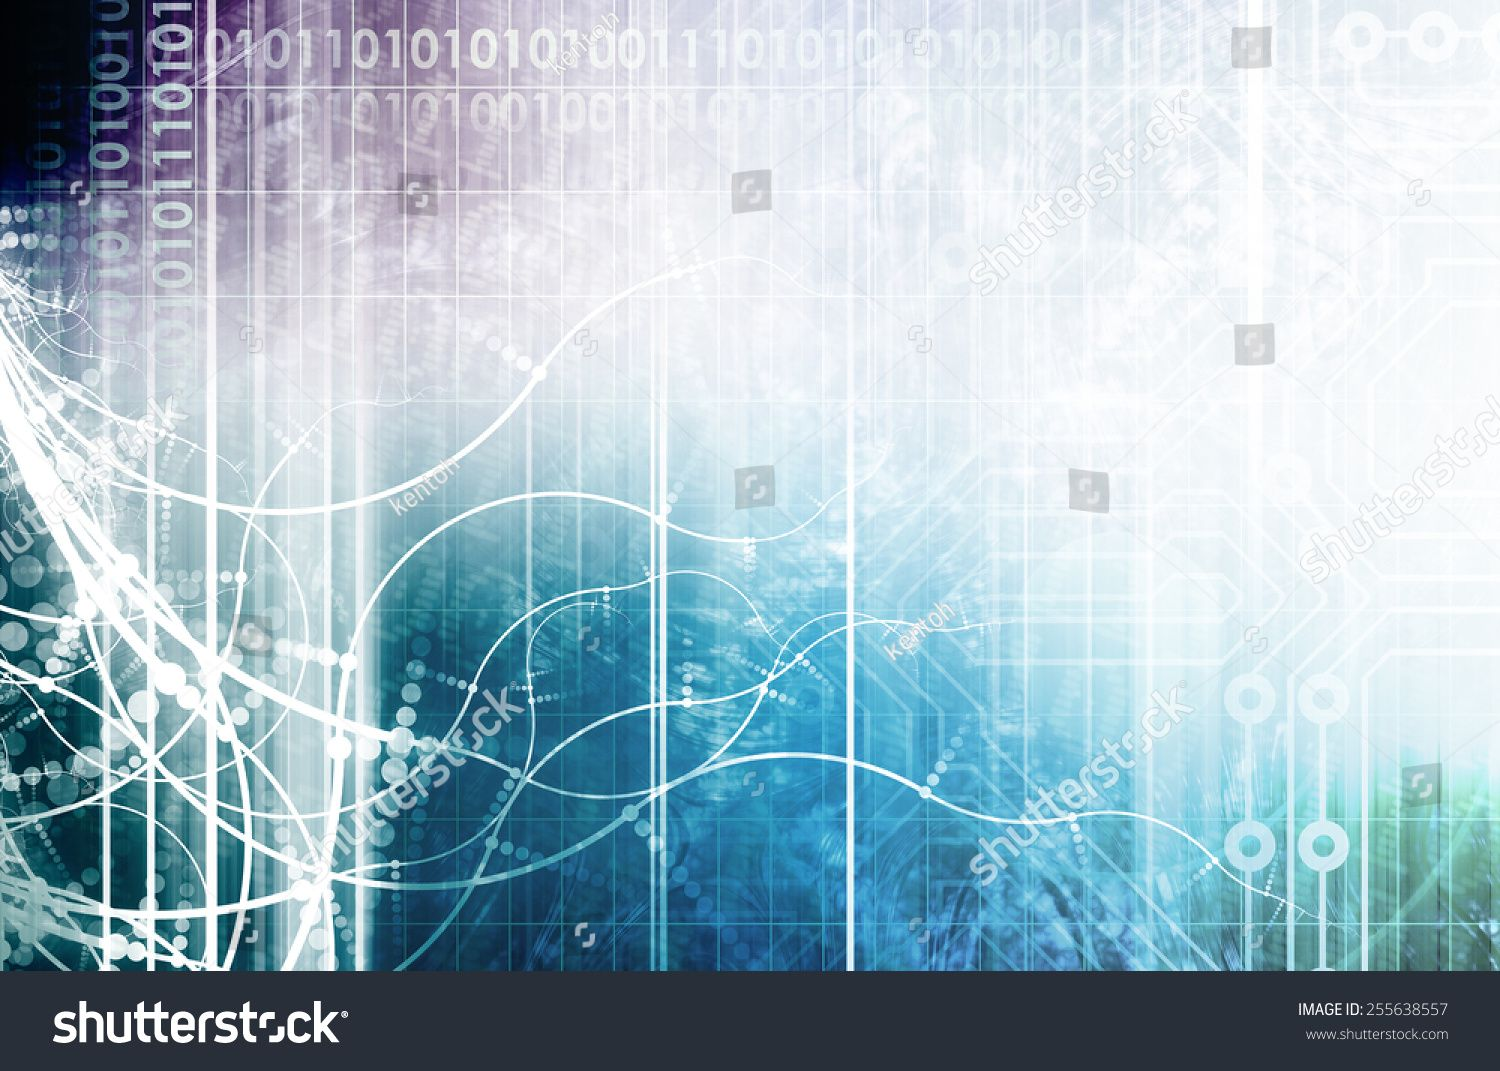 Information Technology Or It As A Art Background Ad Affiliate Technology Information Background Art In 2020 Art Background Technology Art Art